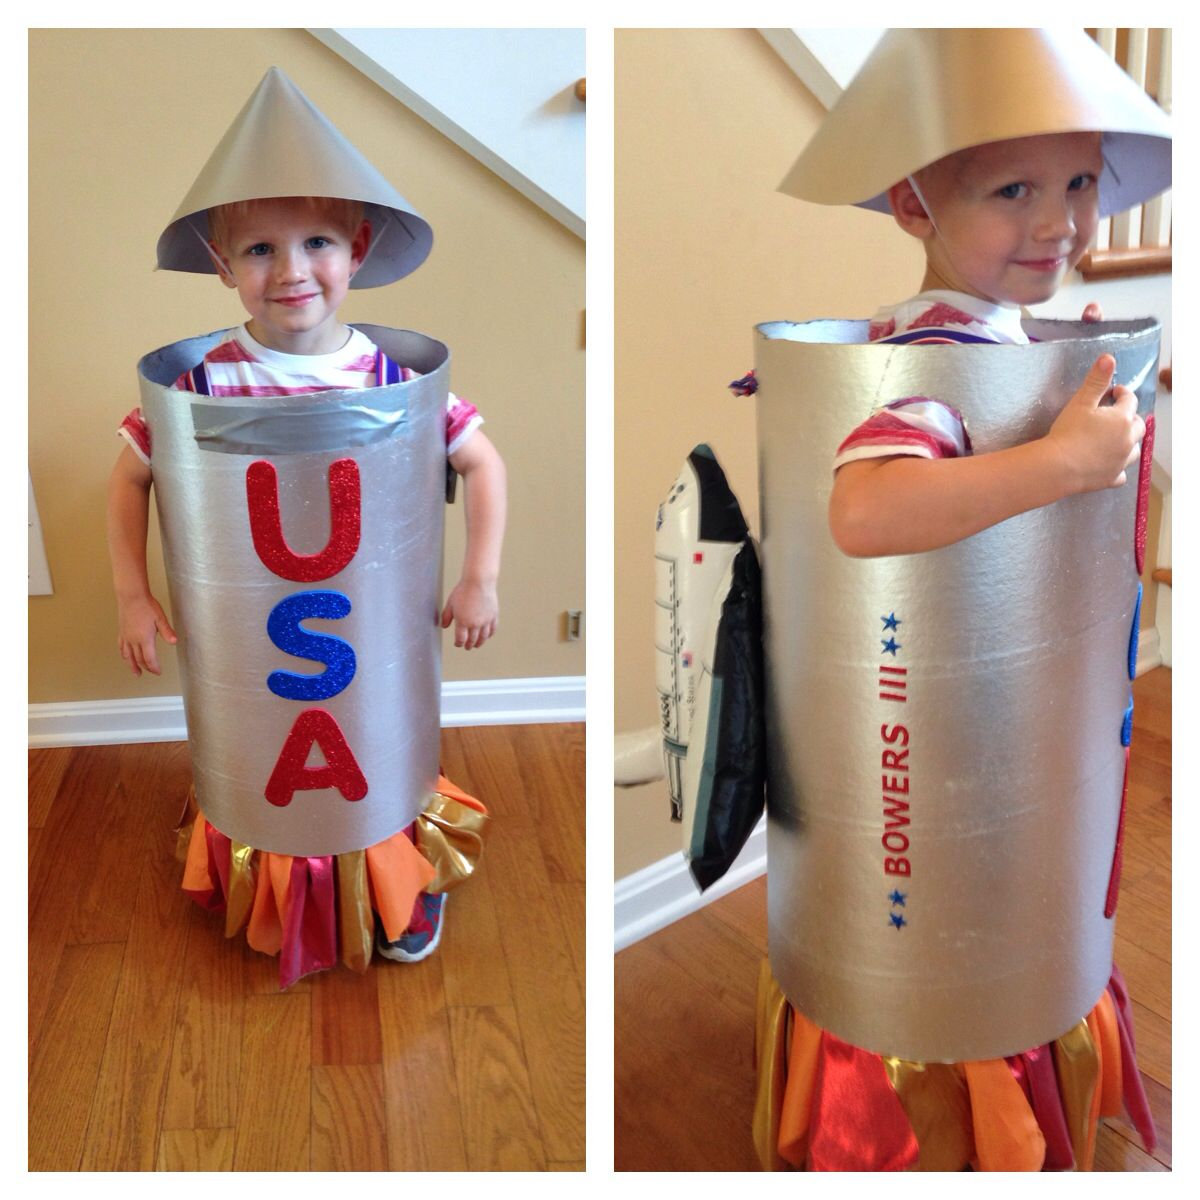 space rocket costume - photo #28